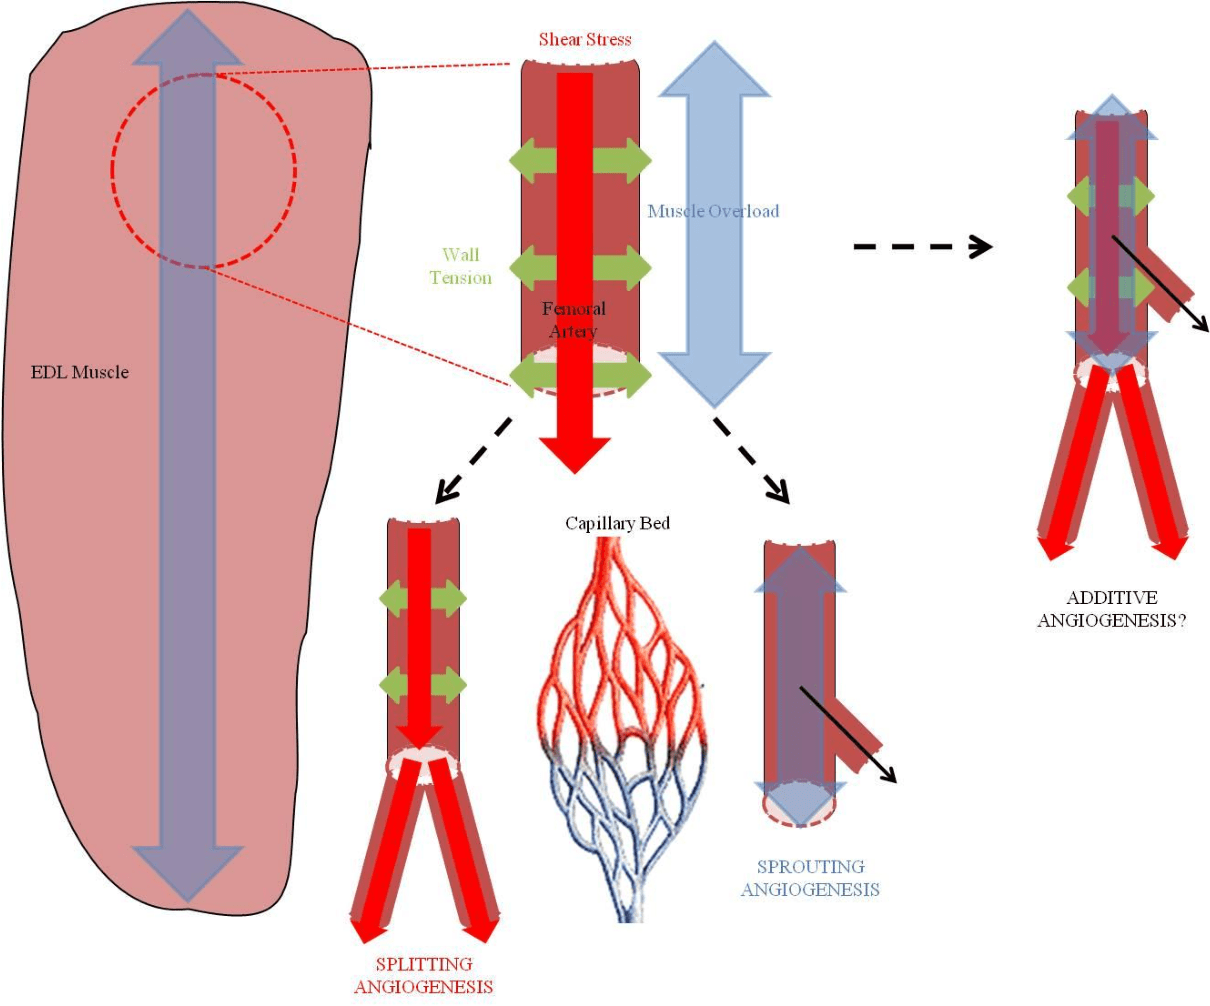 hight resolution of fig 2 schematic highlighting different mechanical stimuli that could be used to induce angiogenesis in